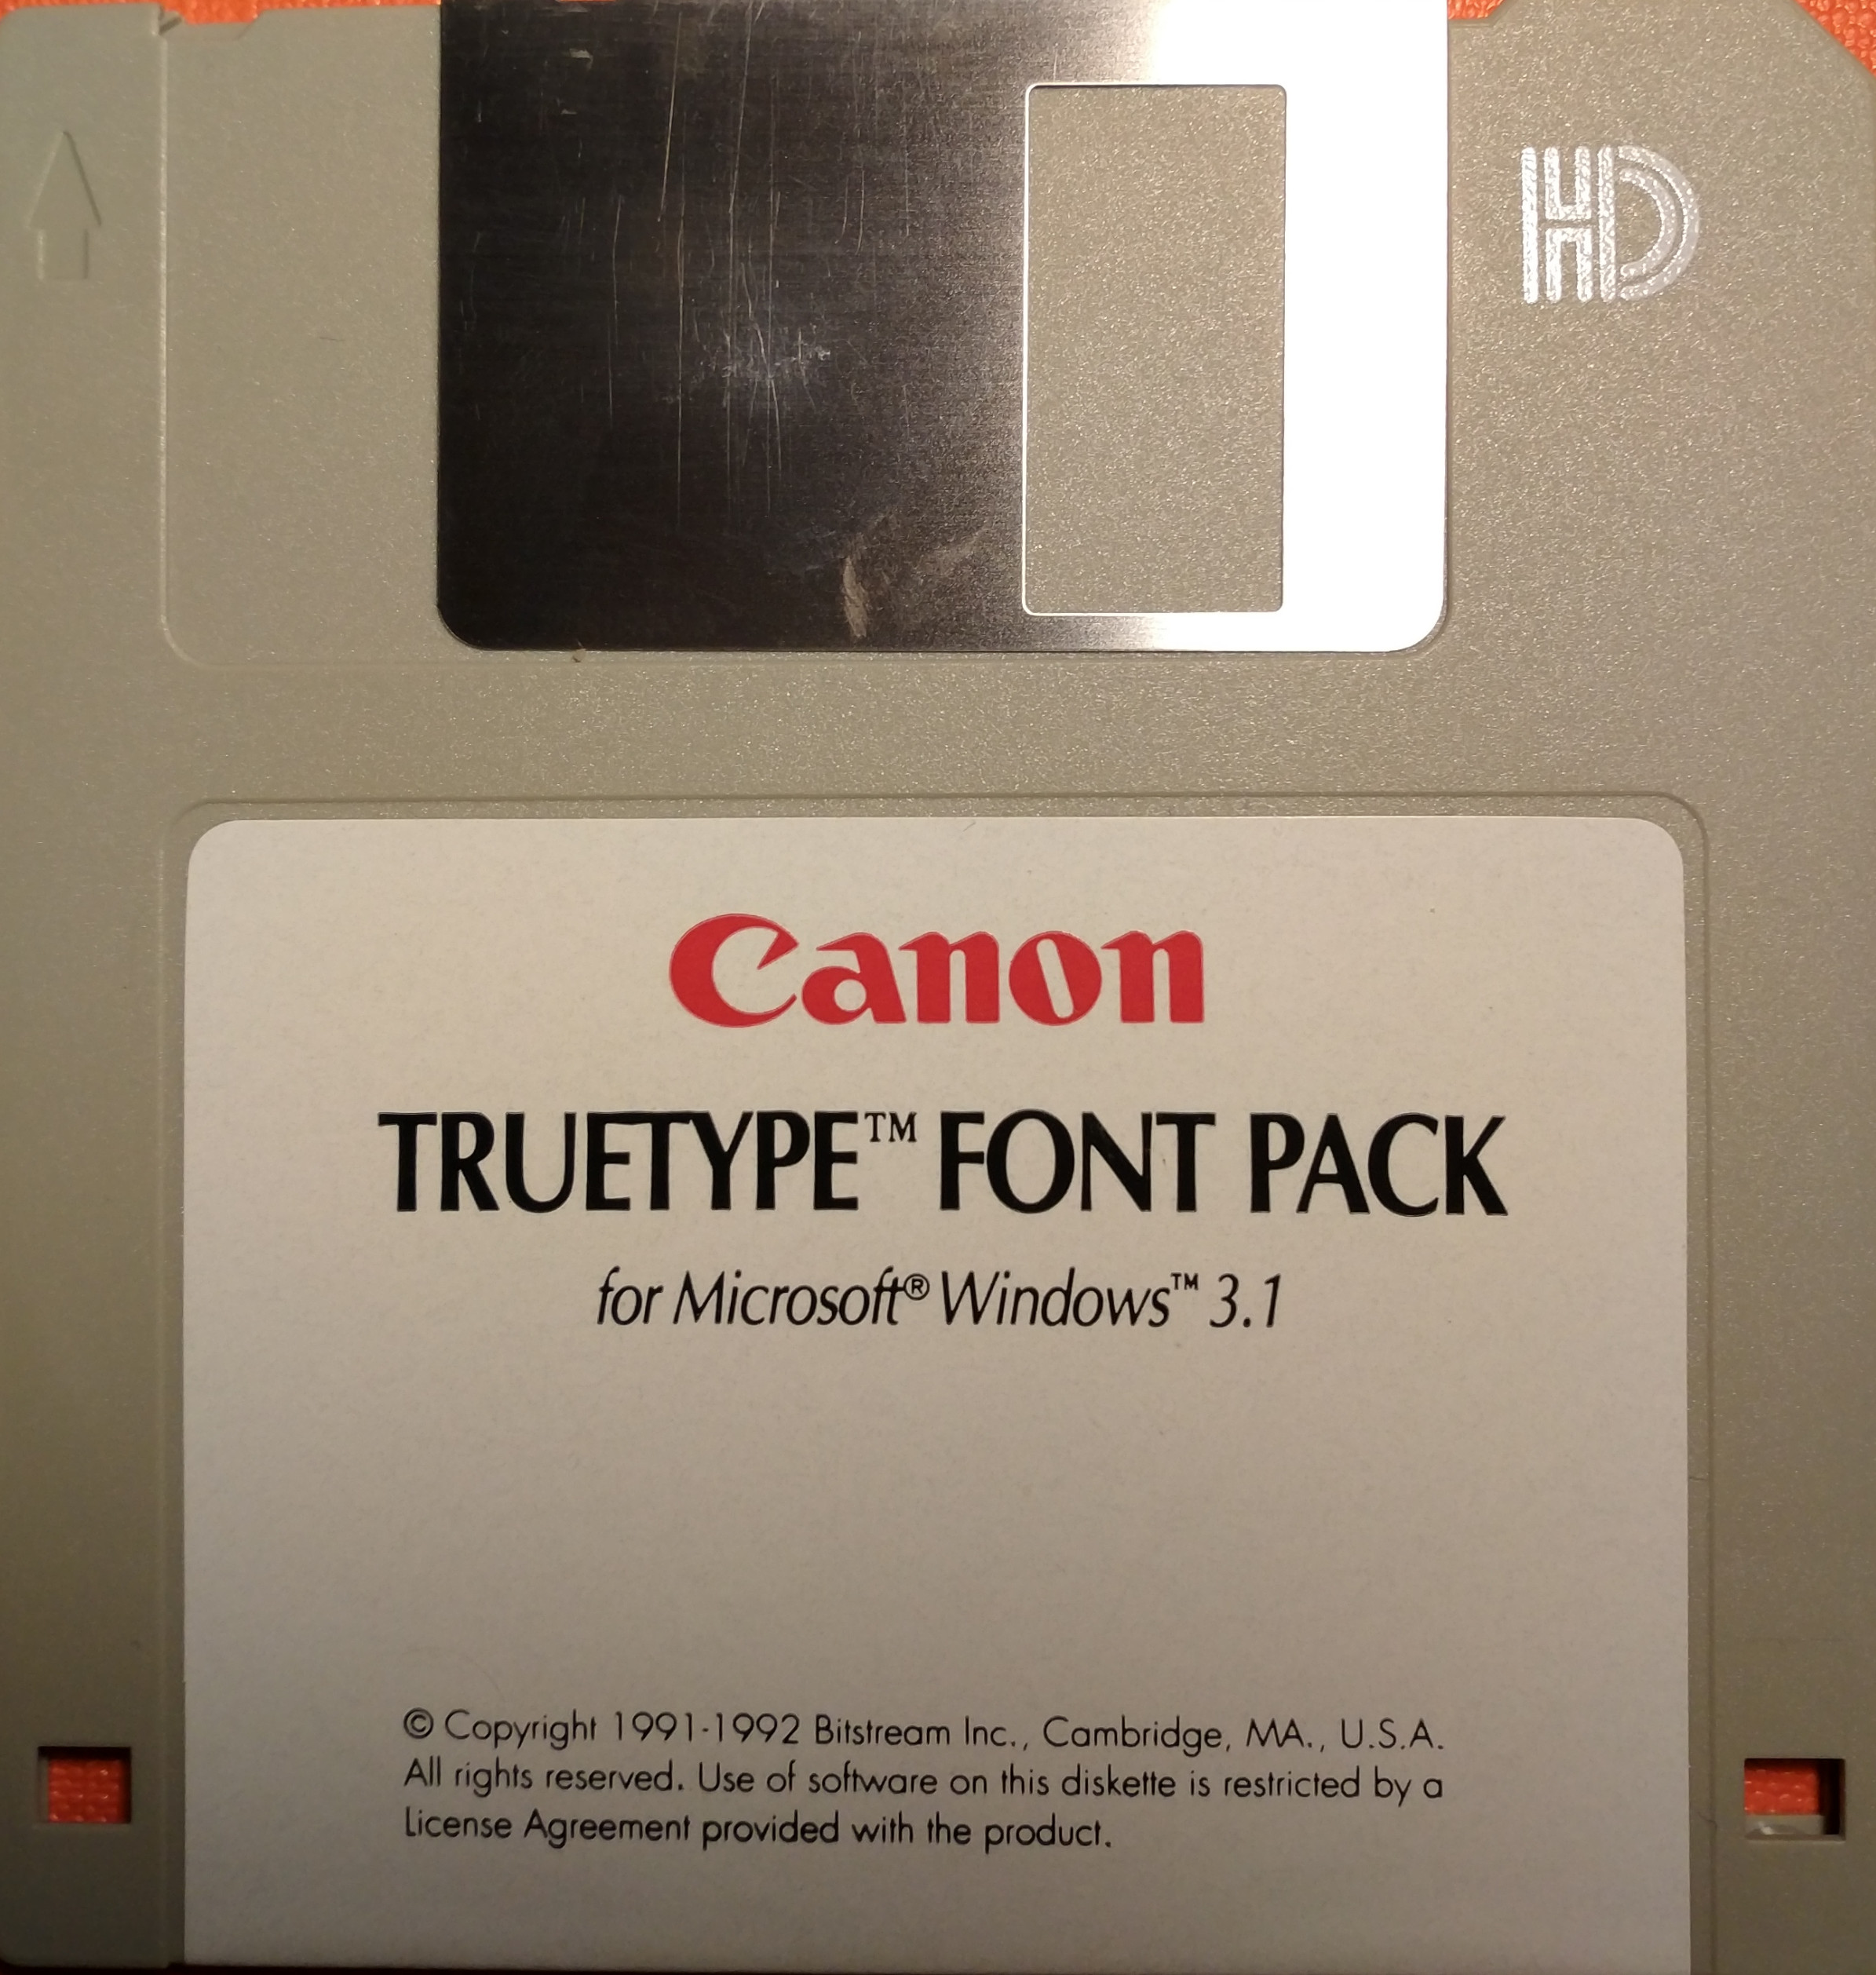 Download Canon Truetype Font Pack for Microsoft Windows 3.1 ...